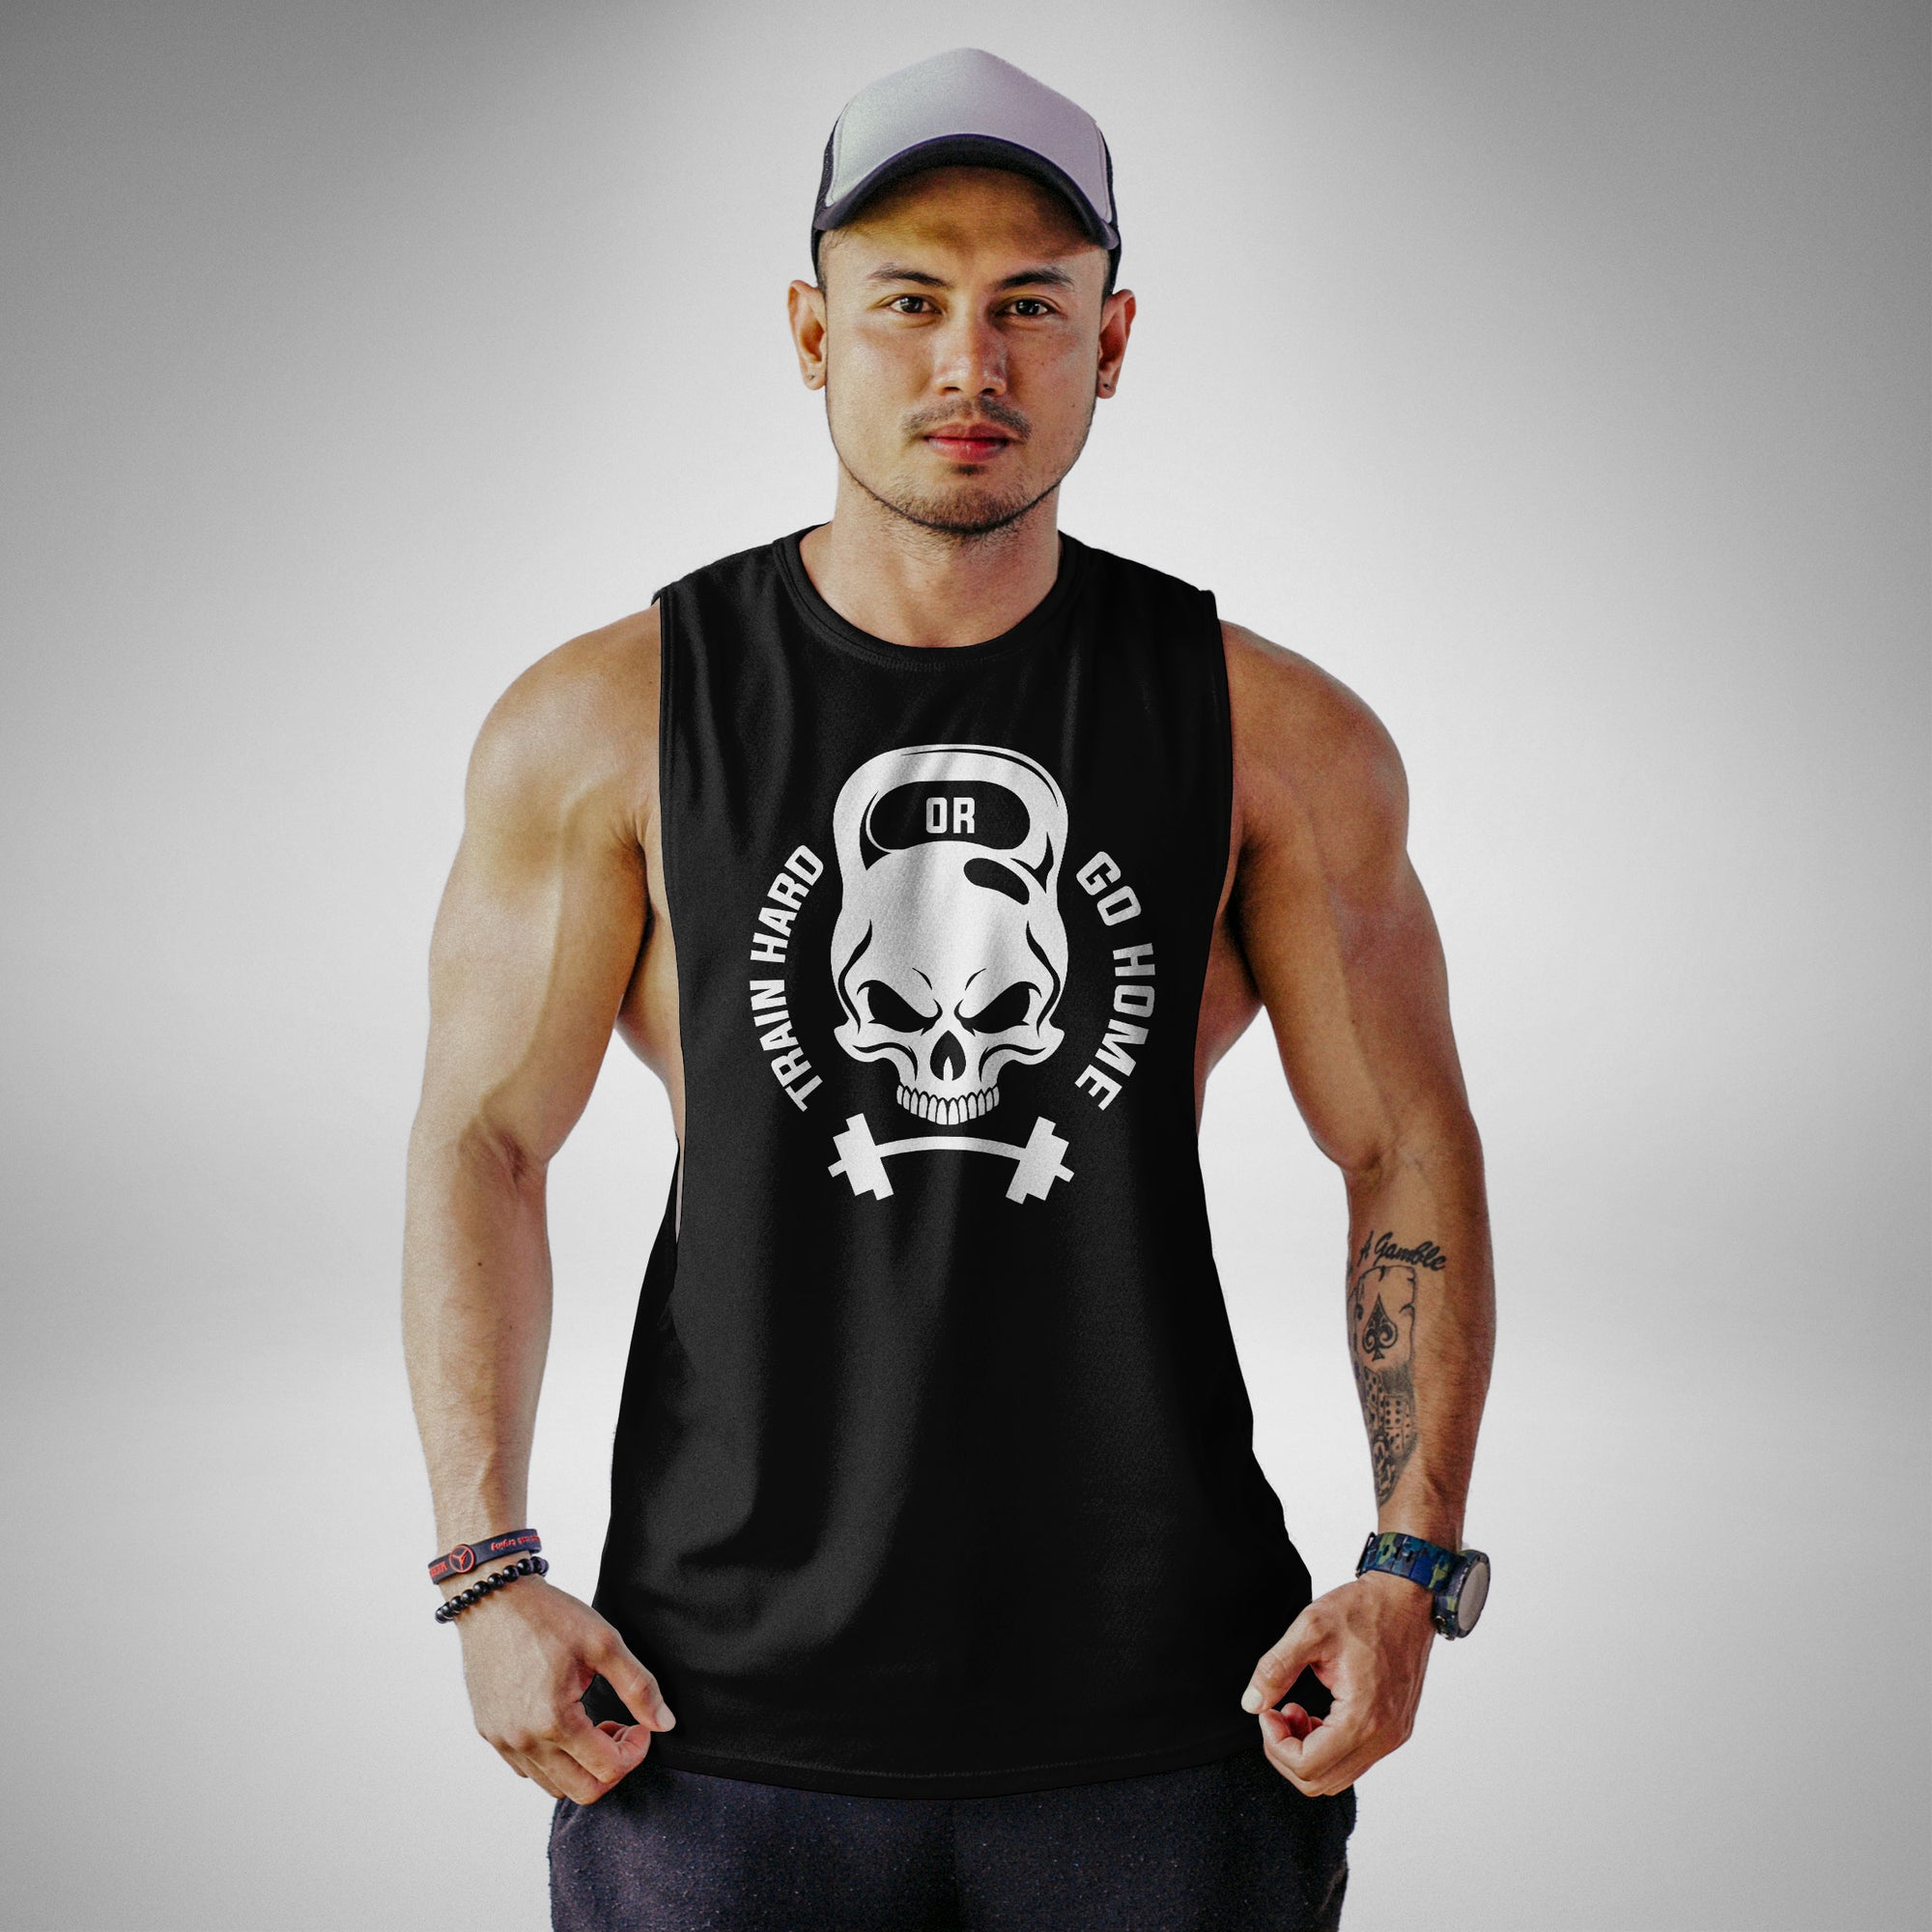 AM102 Train Hard Or Go Home Openside Tank Top